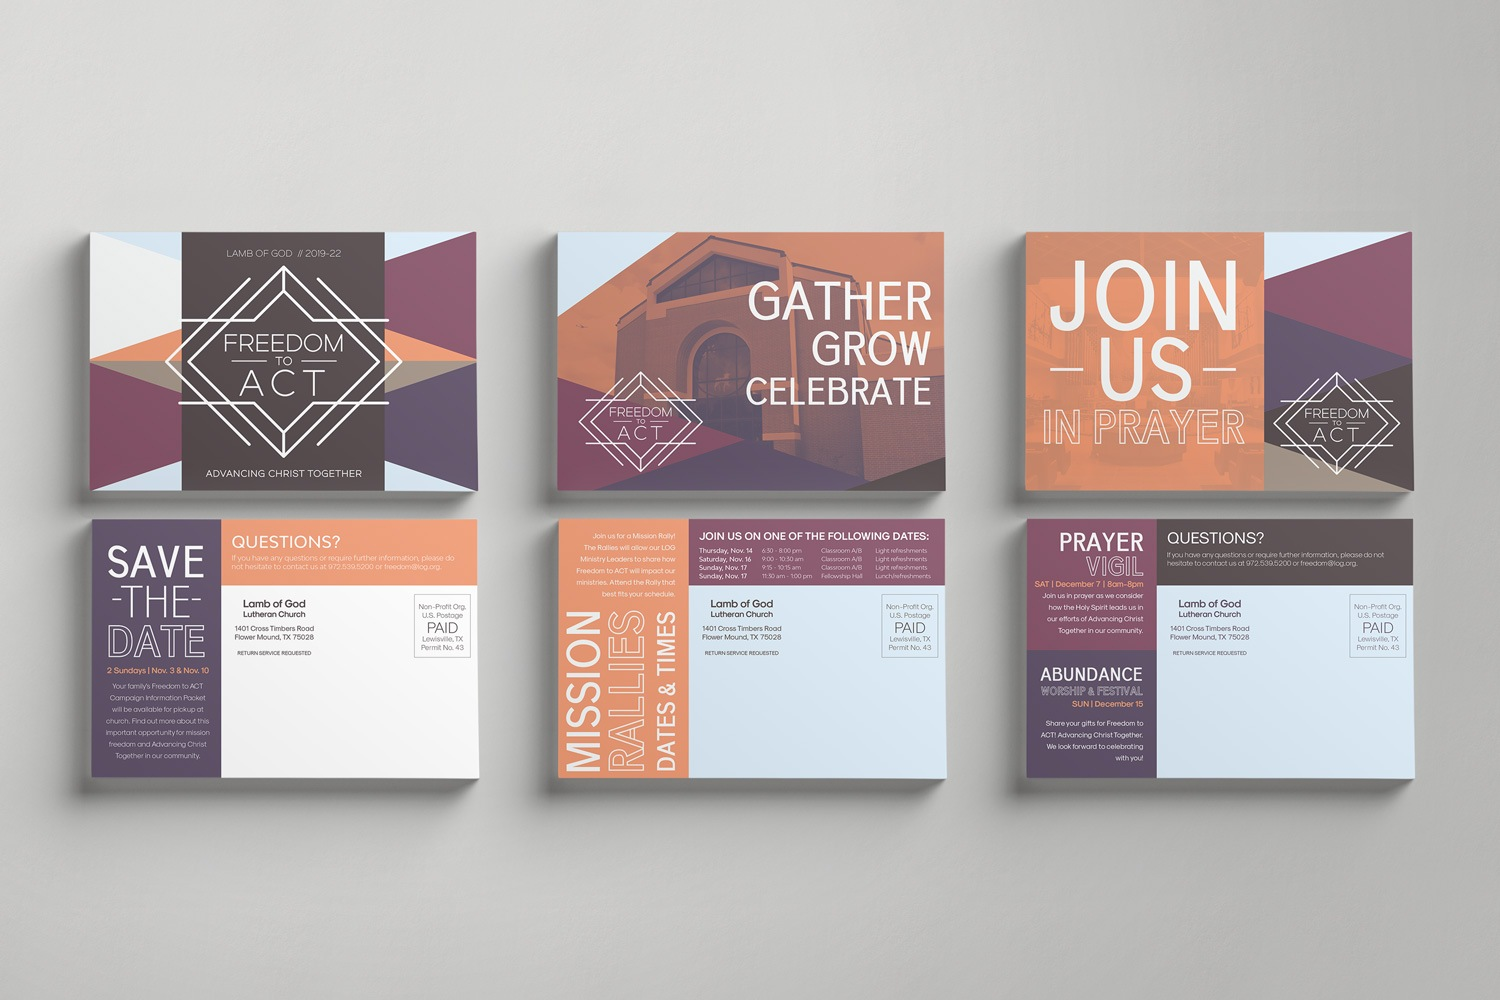 Invitations for Invite cards for church fundraising and capital campaign launch events, 4 x 6in postcards by Abstract Union